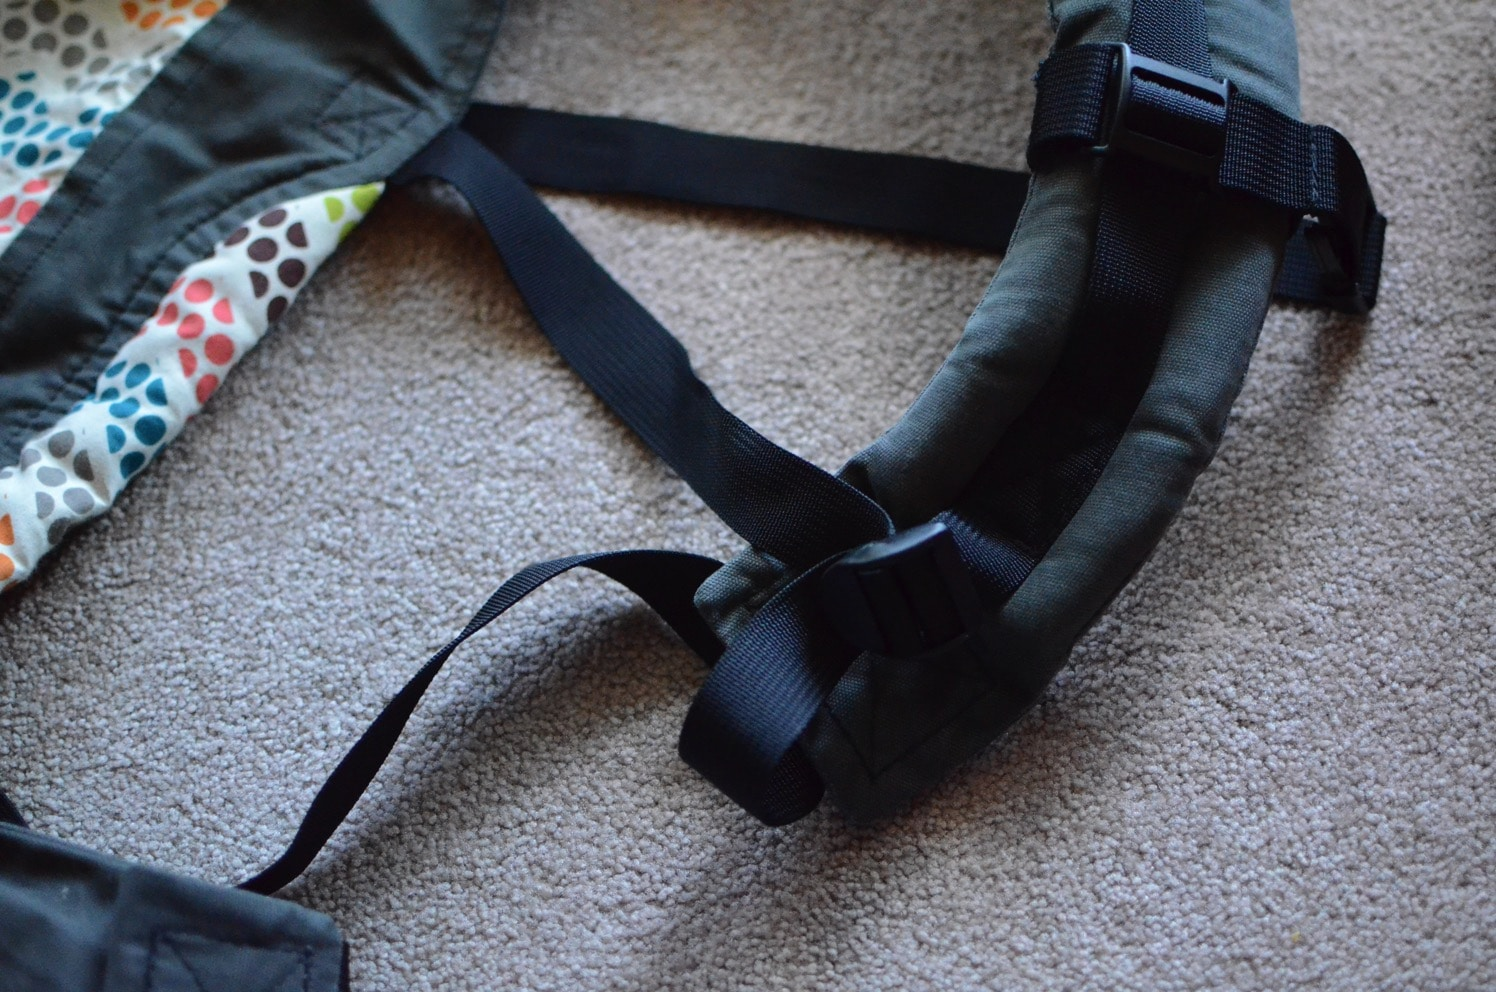 Tula Toddler Carrier straps